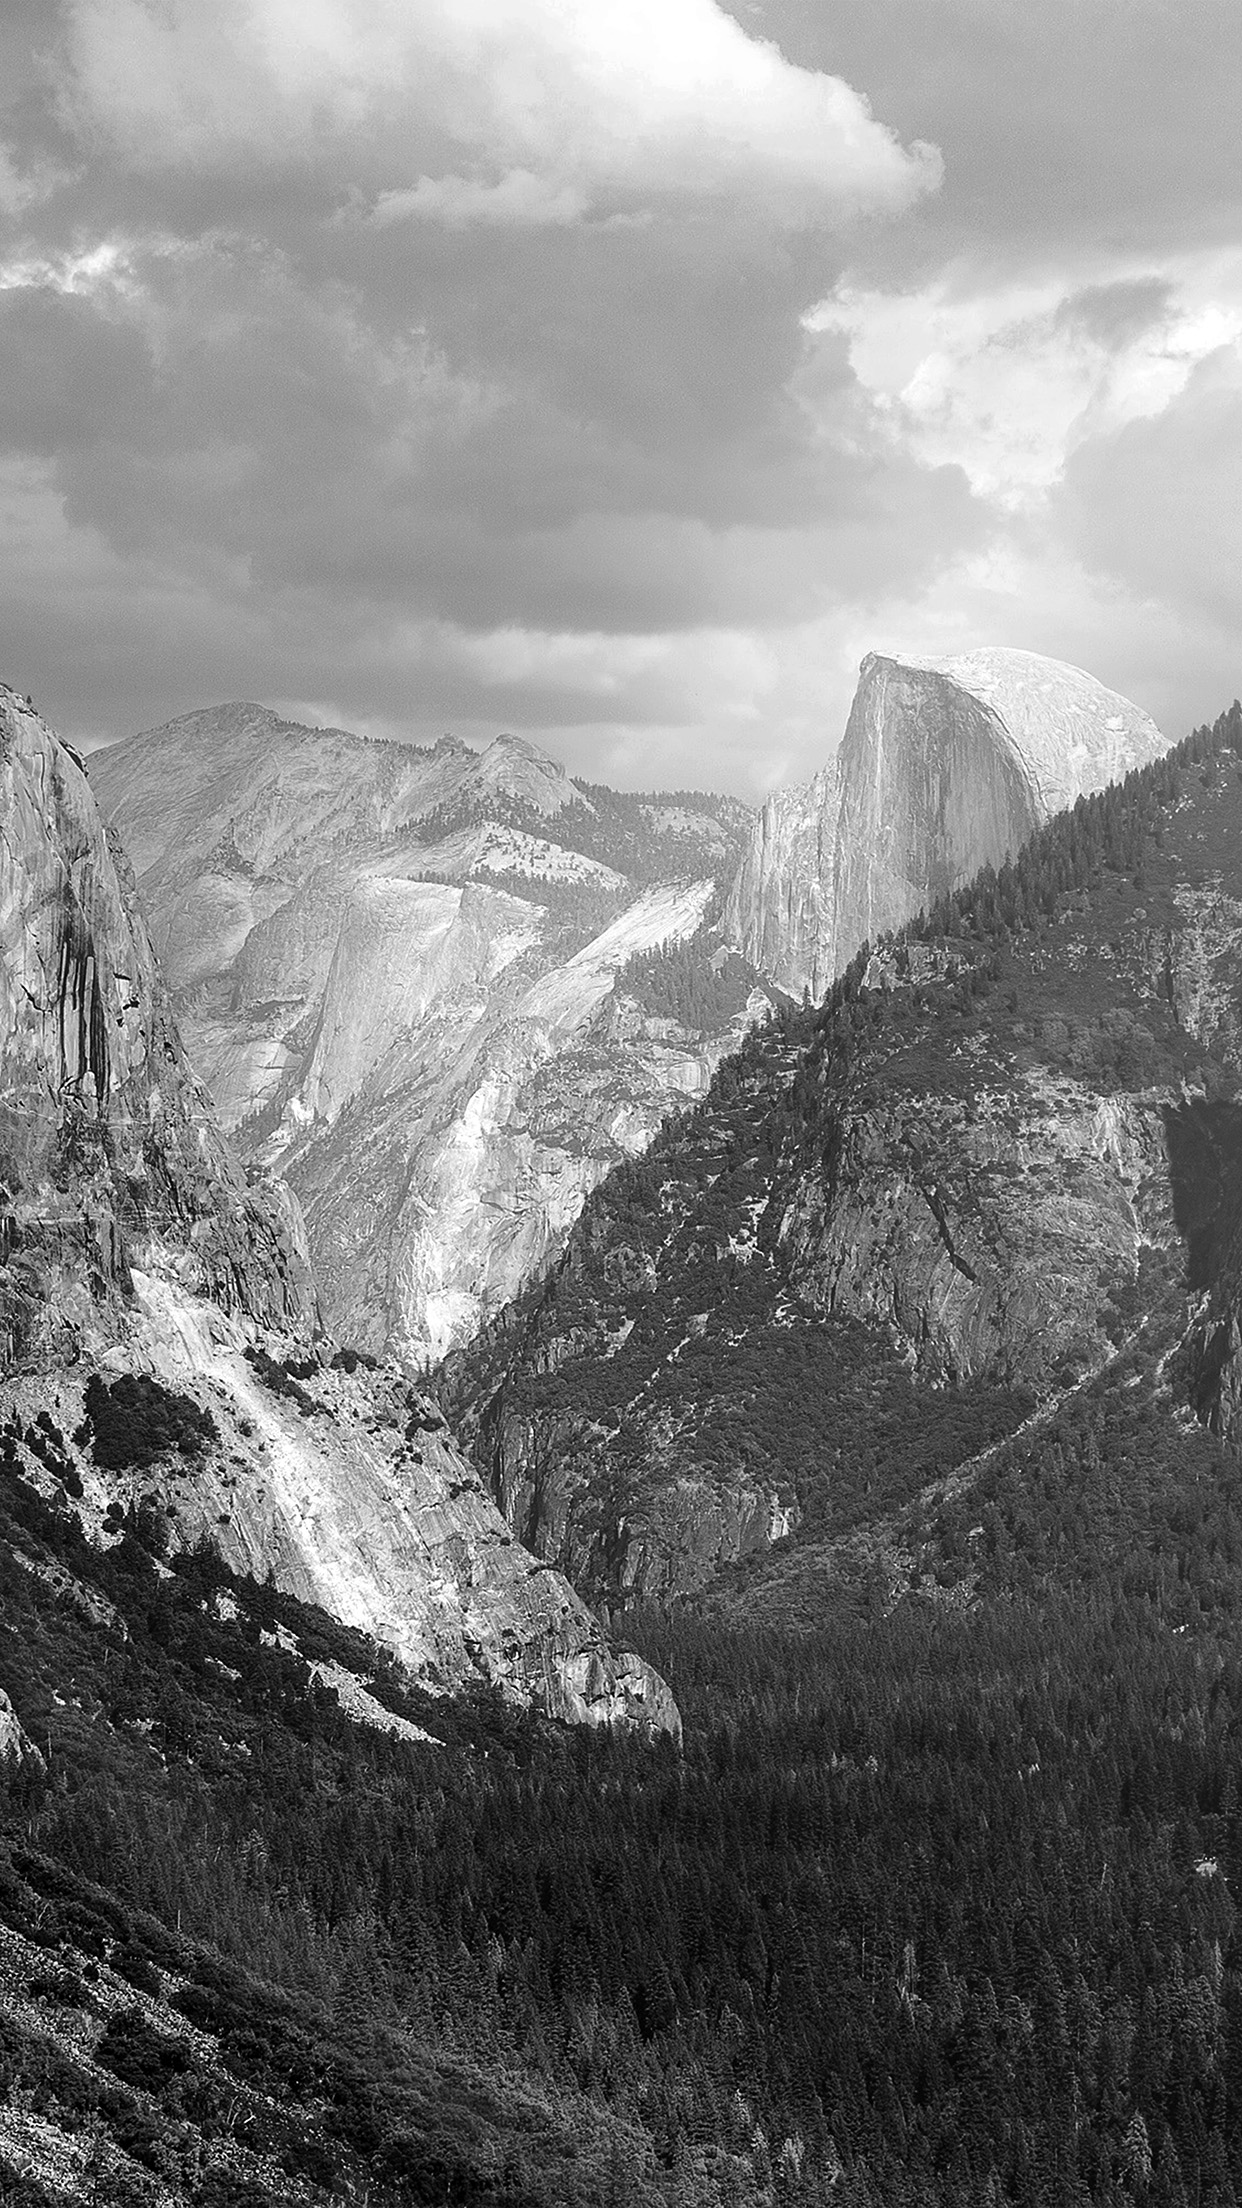 Iphonexpapers Com Iphone X Wallpaper My11 Yosemite Mountain Nature Rock Sky Forest Cloud Bw